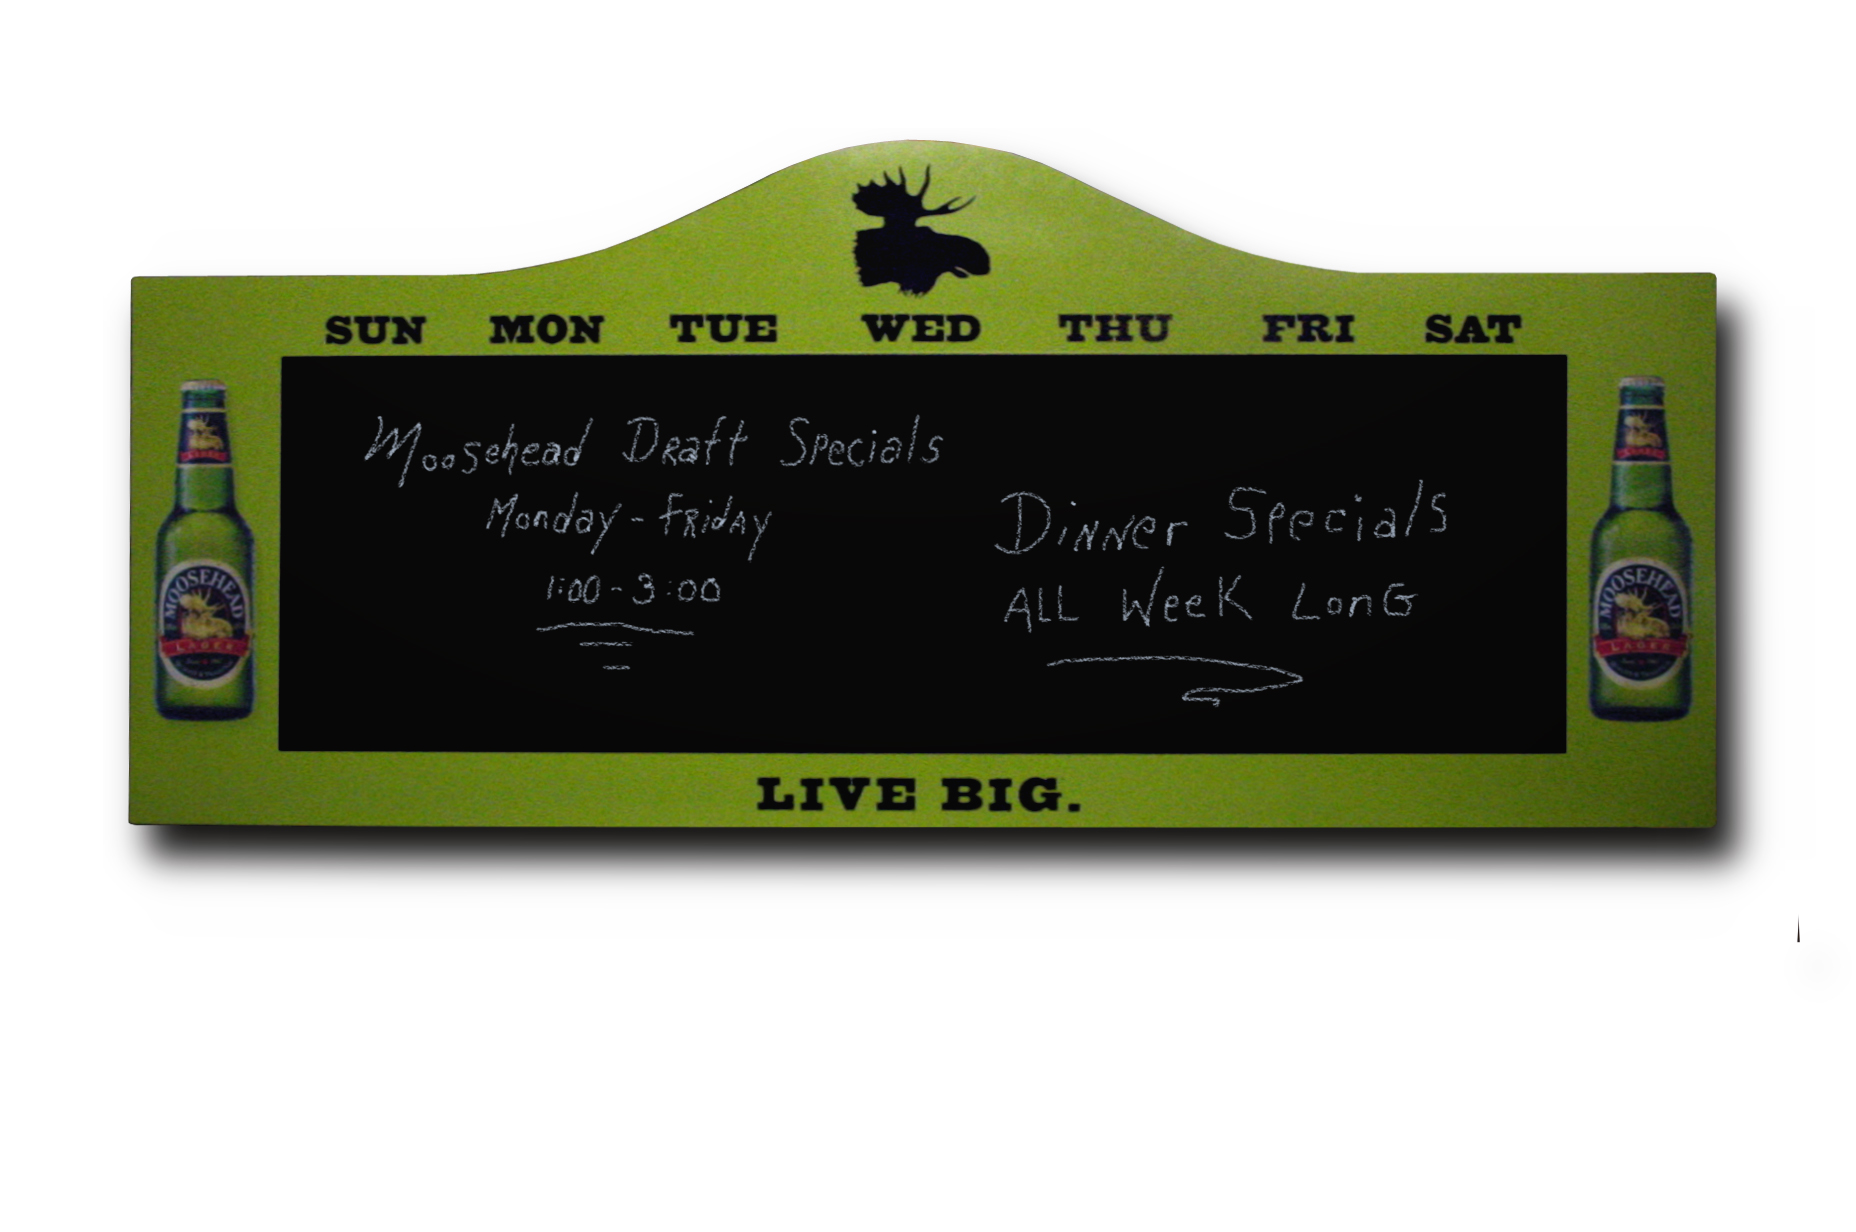 Moosehead Daily Special Chalkboard